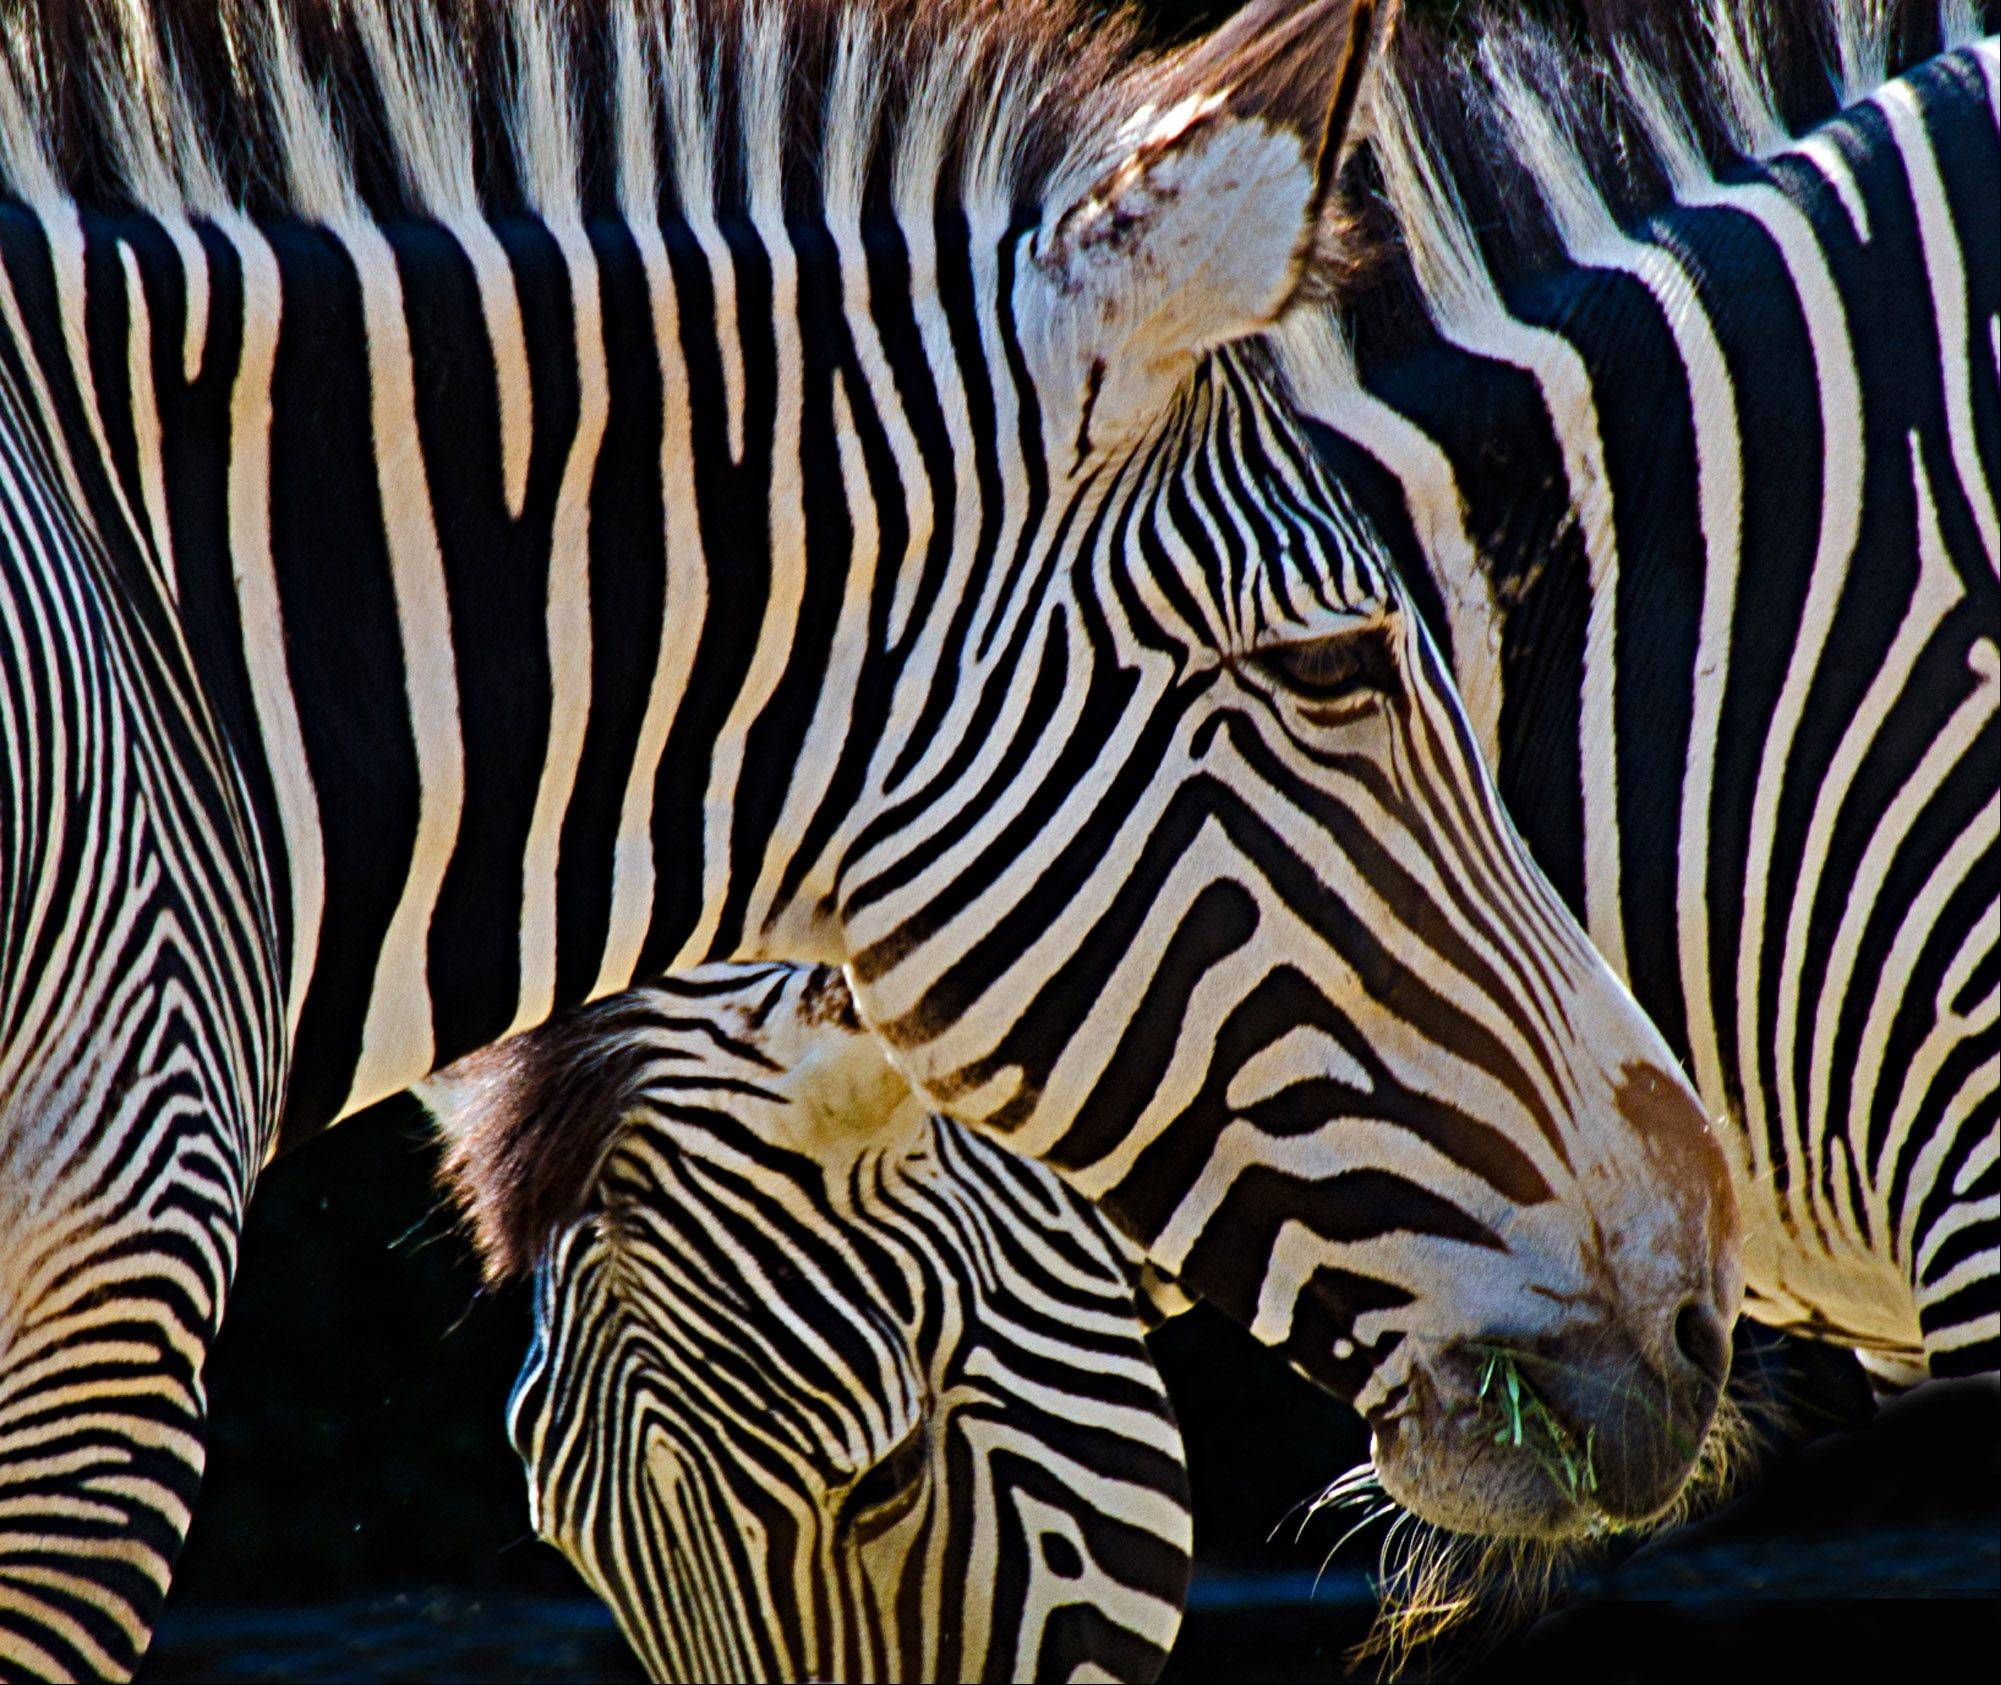 Zebras gather together at the Denver Zoo in mid September.